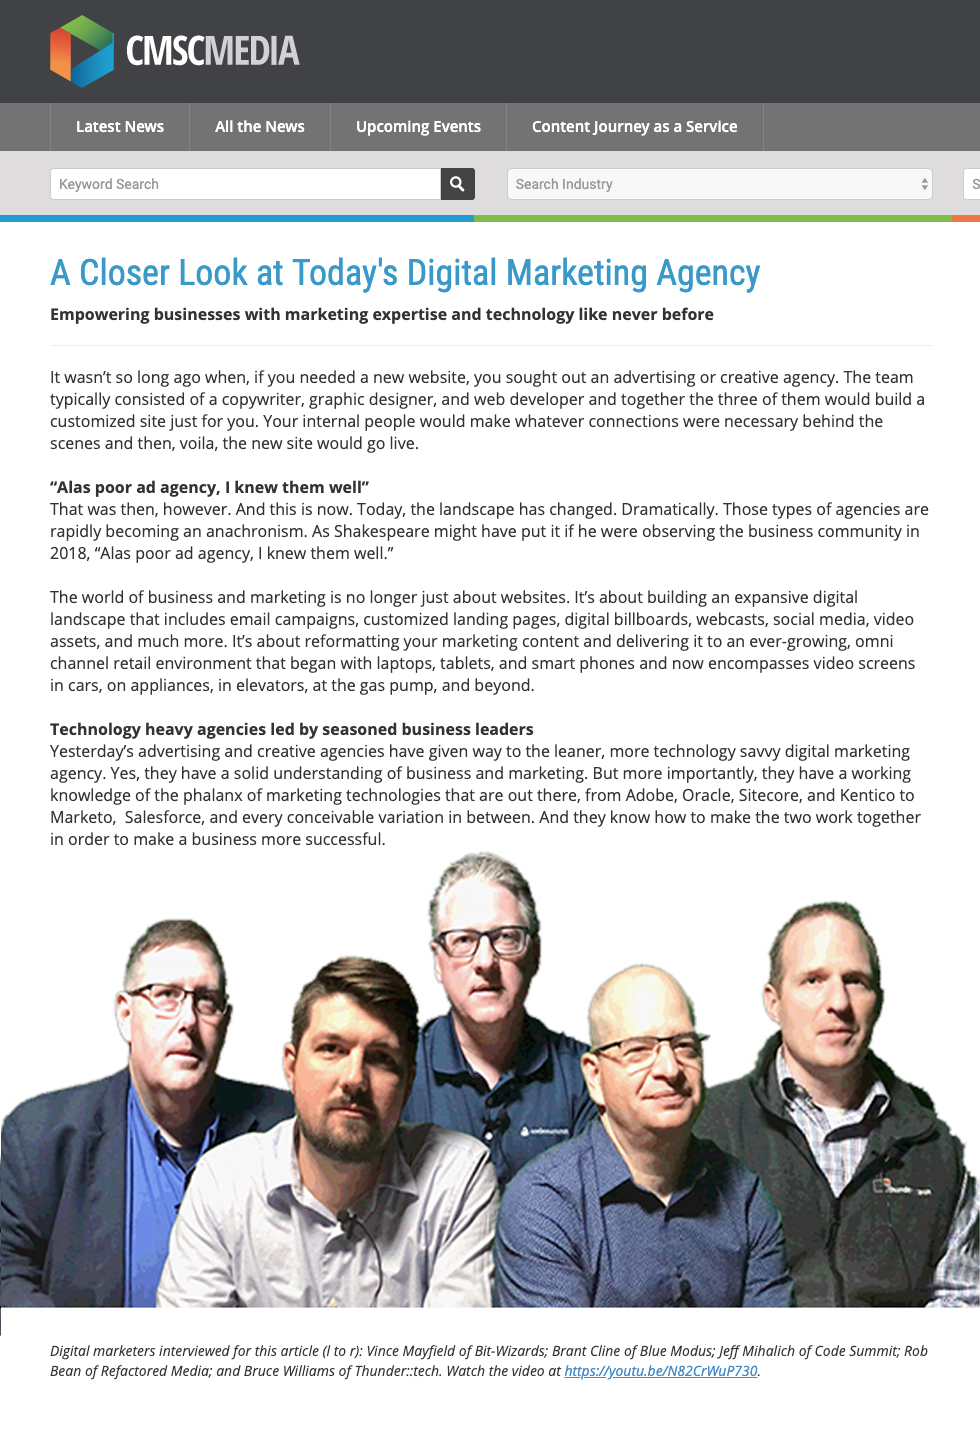 - By attending a partner meeting and shooting video interviews on-site, Jim Panagas was able to author an article for CMS-Connected (above) that showed today's digital marketing agency in a whole new light. The article featured a short embedded video (below) to increase its appeal.